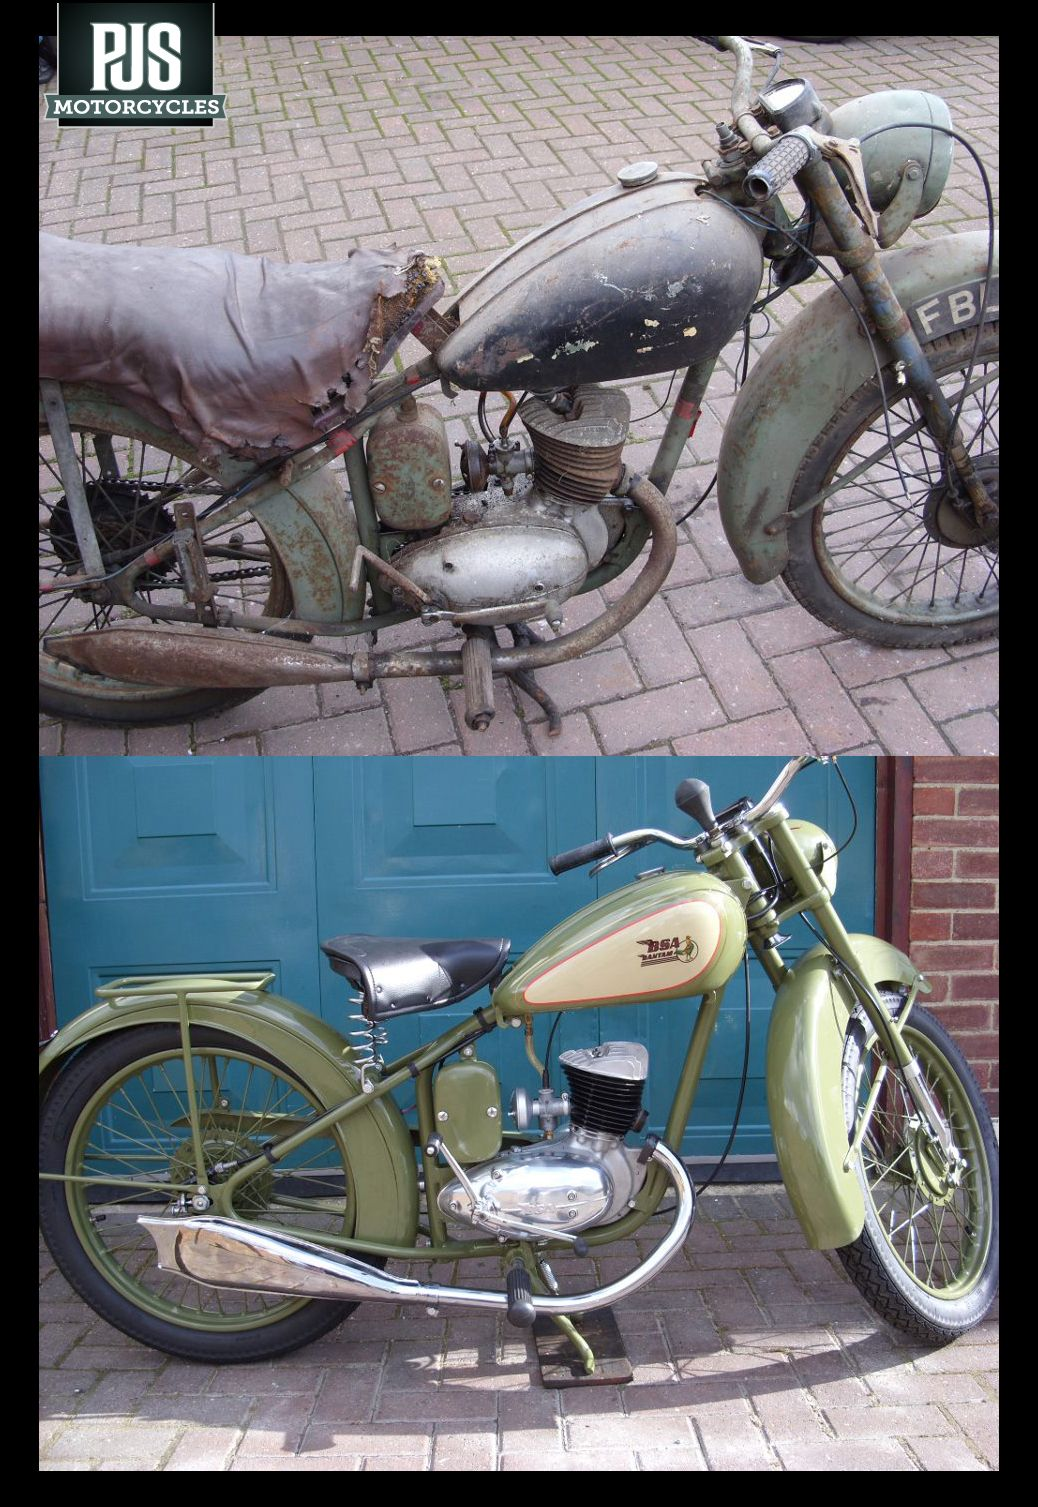 The Classic Before And After Shot This Bsa Bantam Came To Pjs Looking Rather Sorry For Itself And Left Fully Res Bsa Motorcycle Bsa Bantam Classic Motorcycles